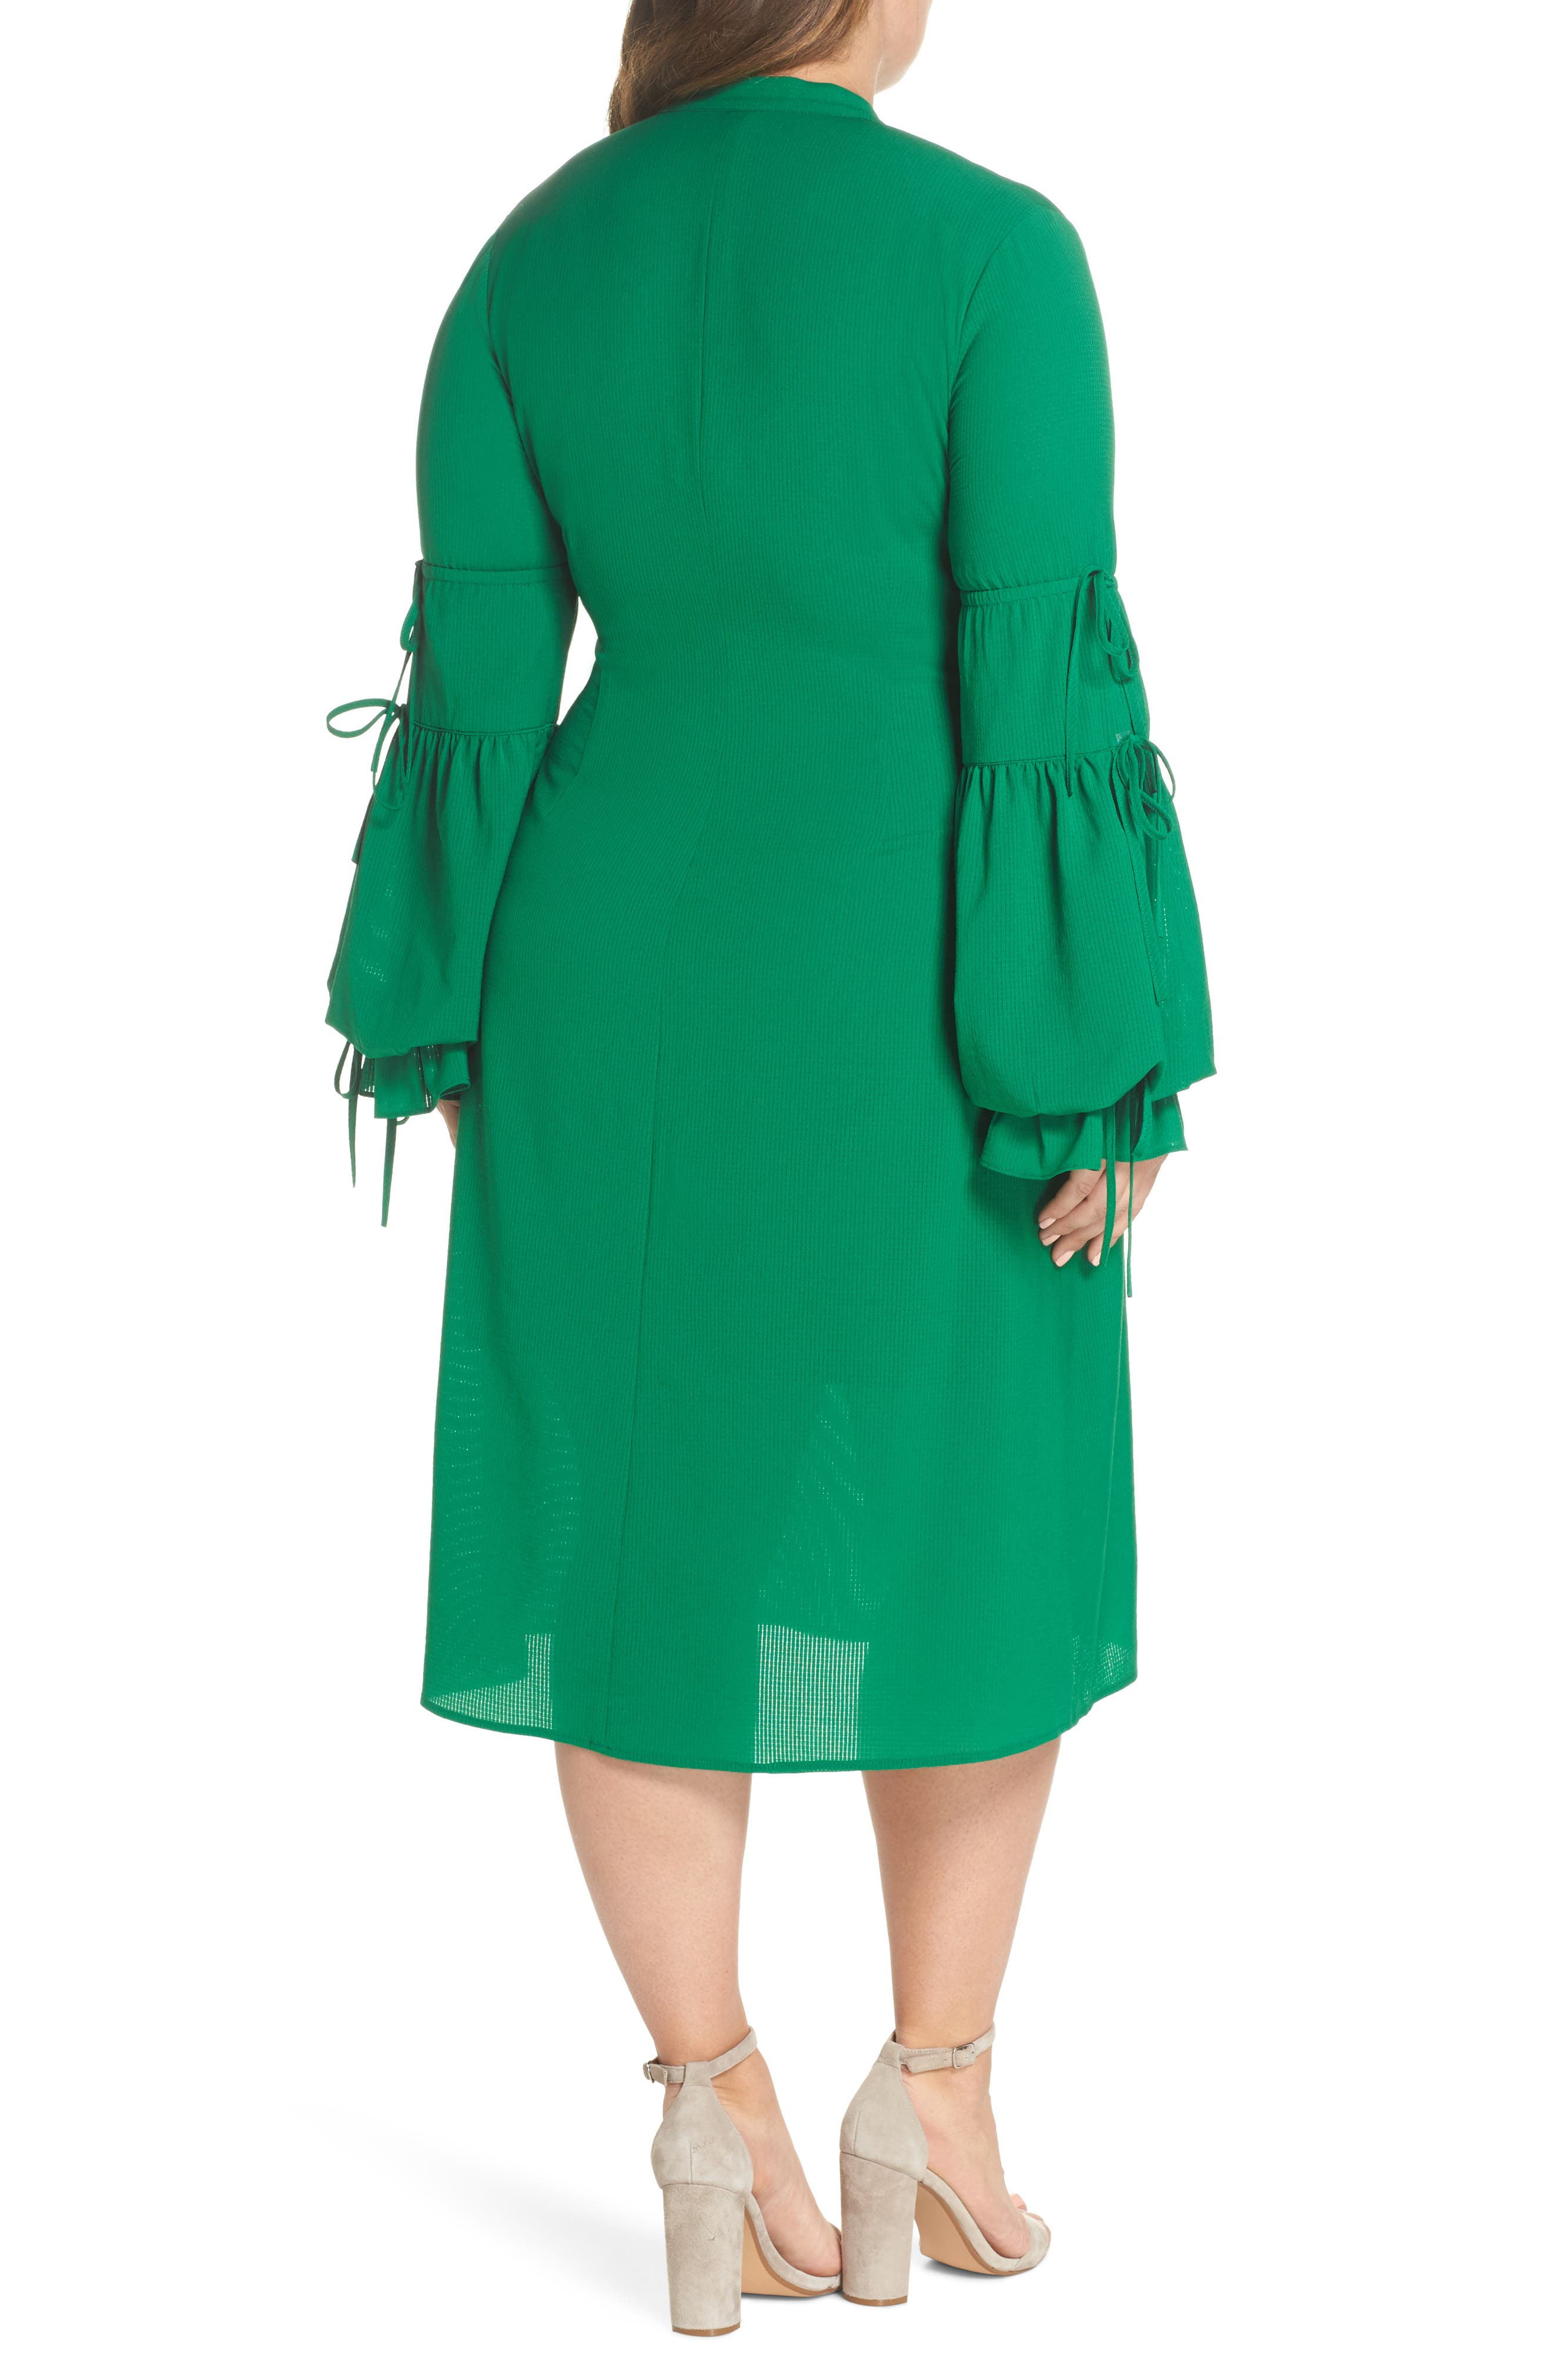 Leiko Antoinette Puff Sleeve Tea Dress,                             Alternate thumbnail 3, color,                             Green